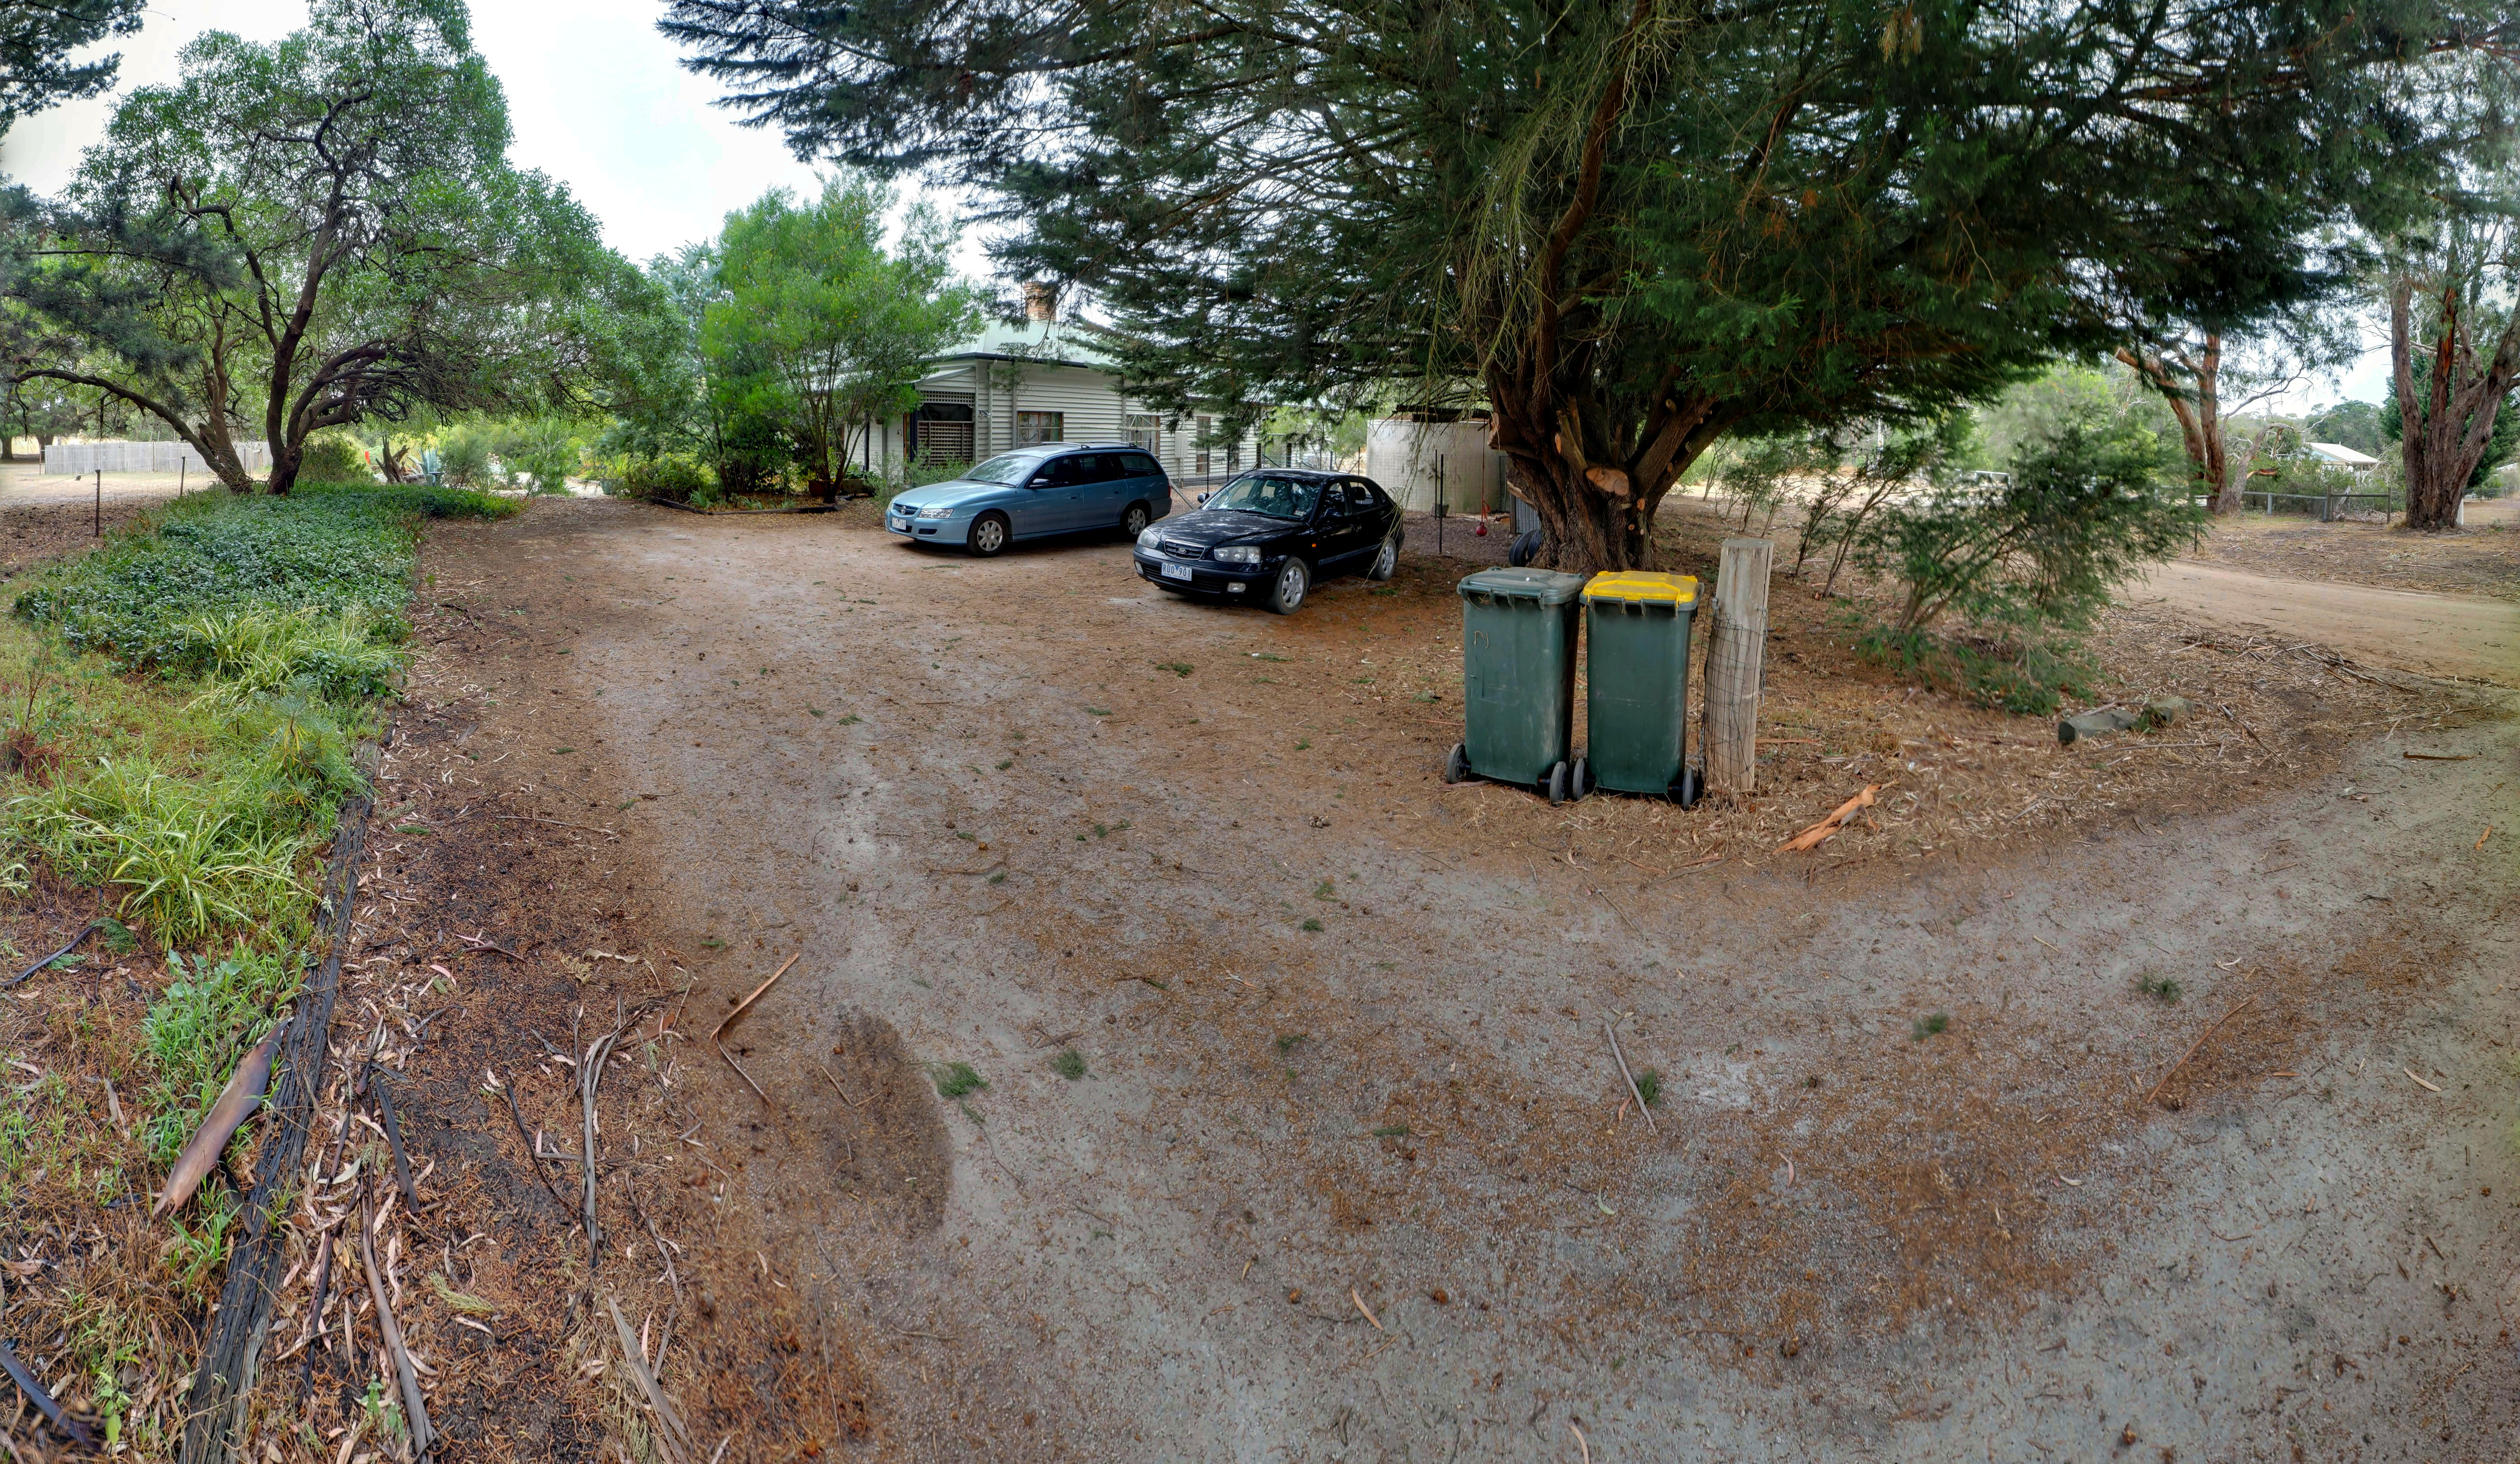 This should be driveway-nw.jpeg.  Is it missing?